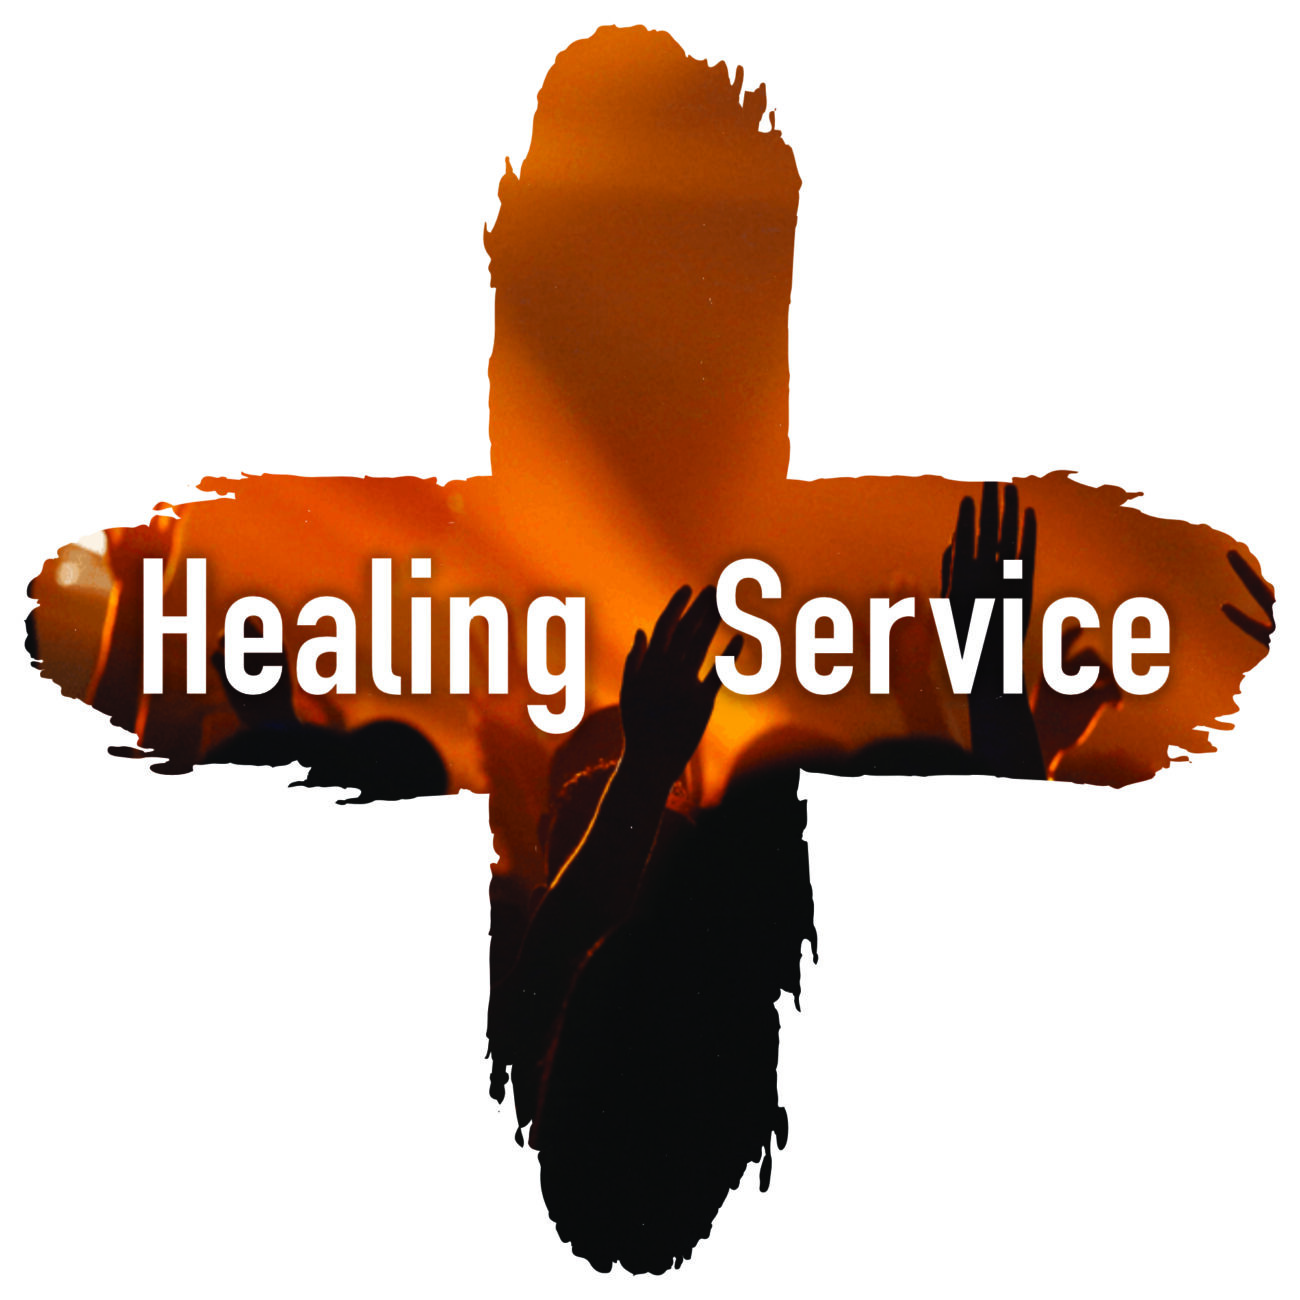 February Healing Service / Meal